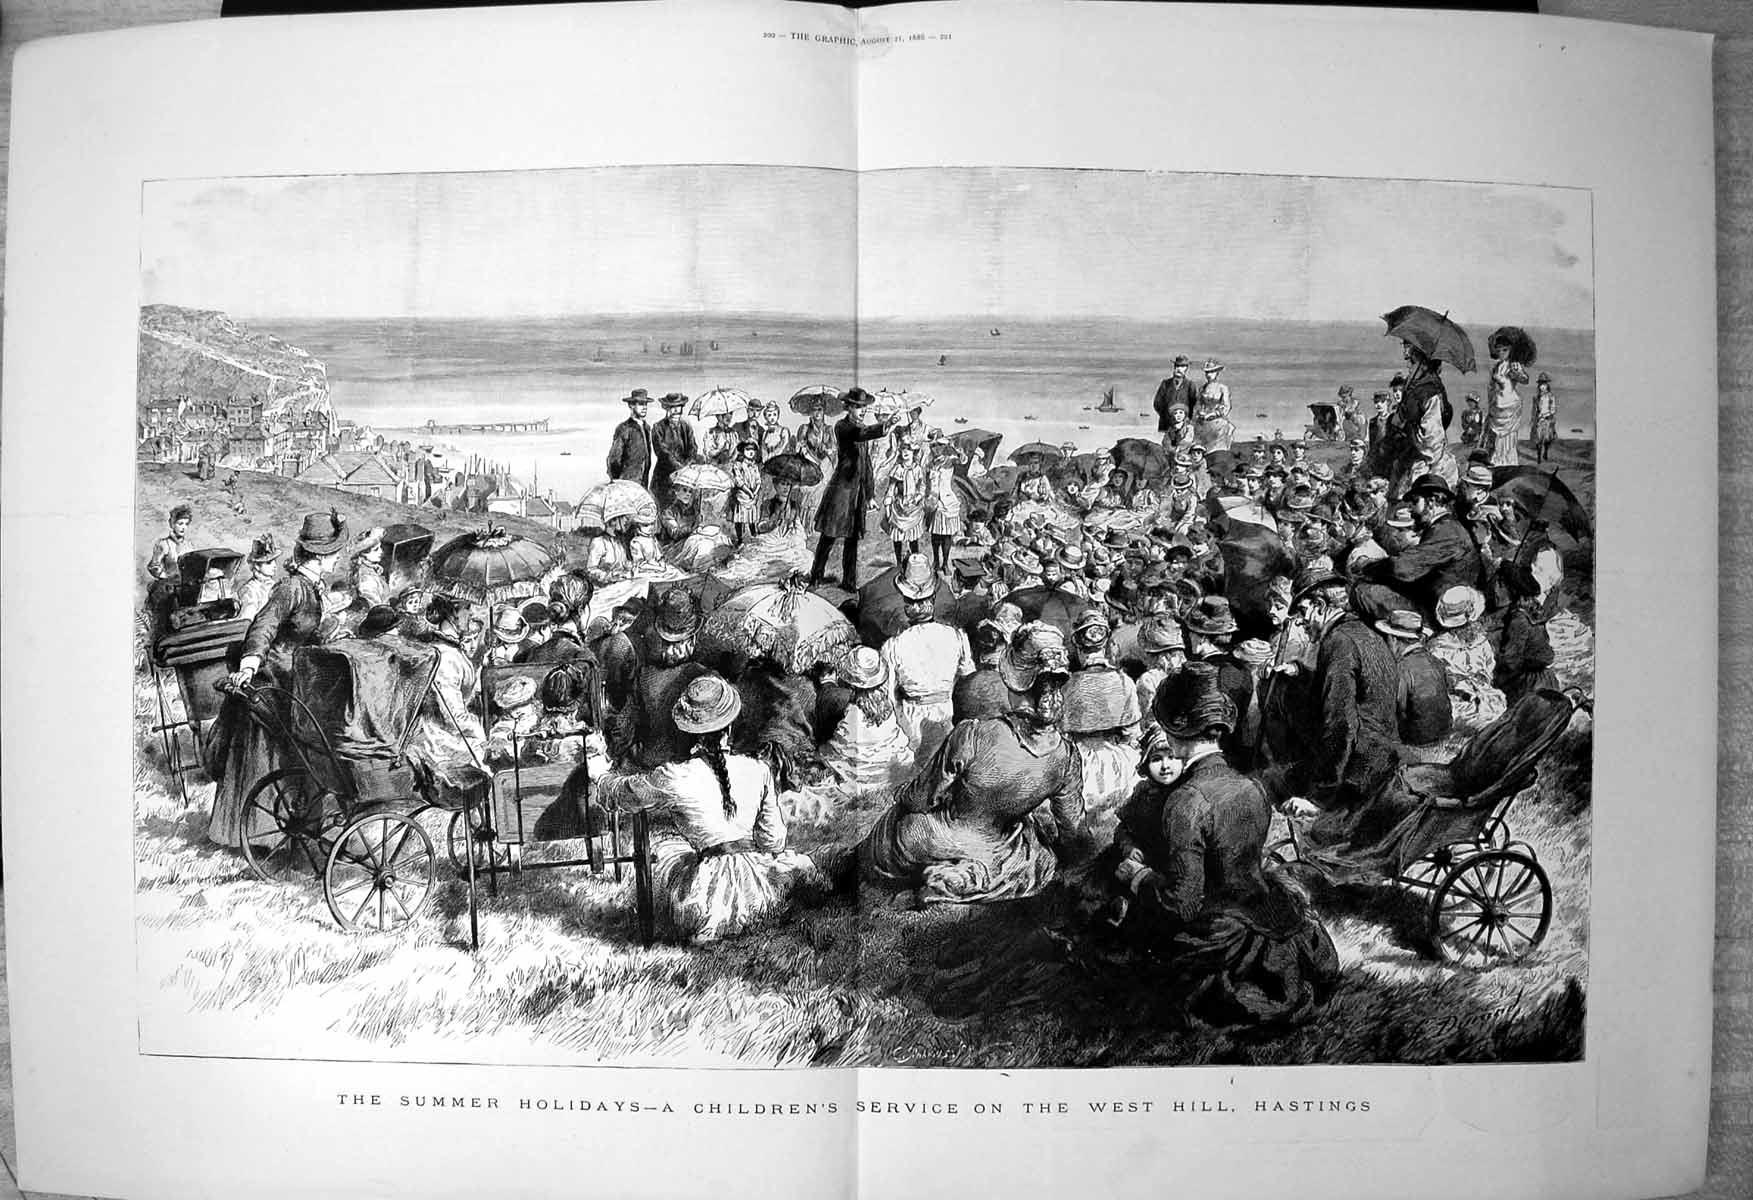 Antique-Print-Summer-Holidays-Childrens-Service-West-Hill-Hastings-Sea-1886